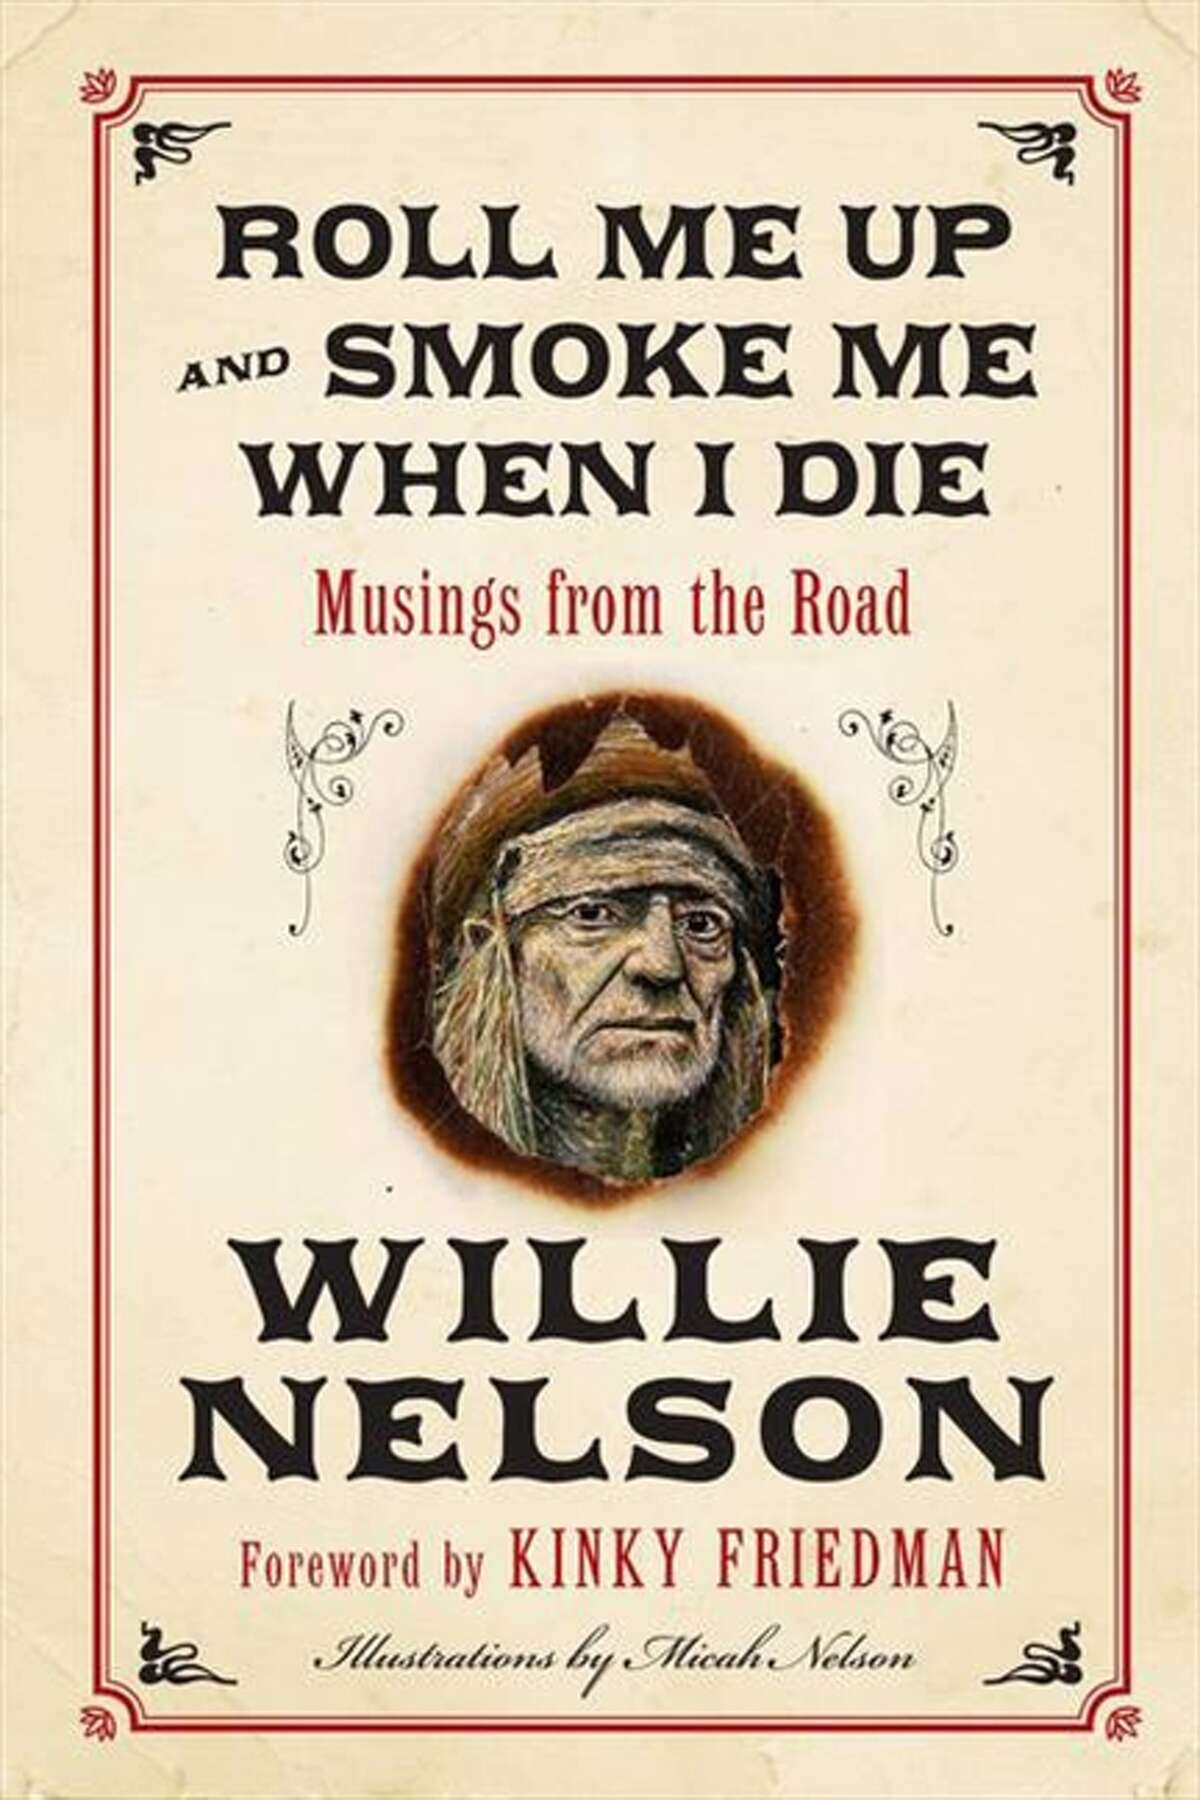 A tour diary from outlaw country music legend Willie Nelson is heavy on jokes, tokes, and wisdom. With a foreword by Kinky Friedman.